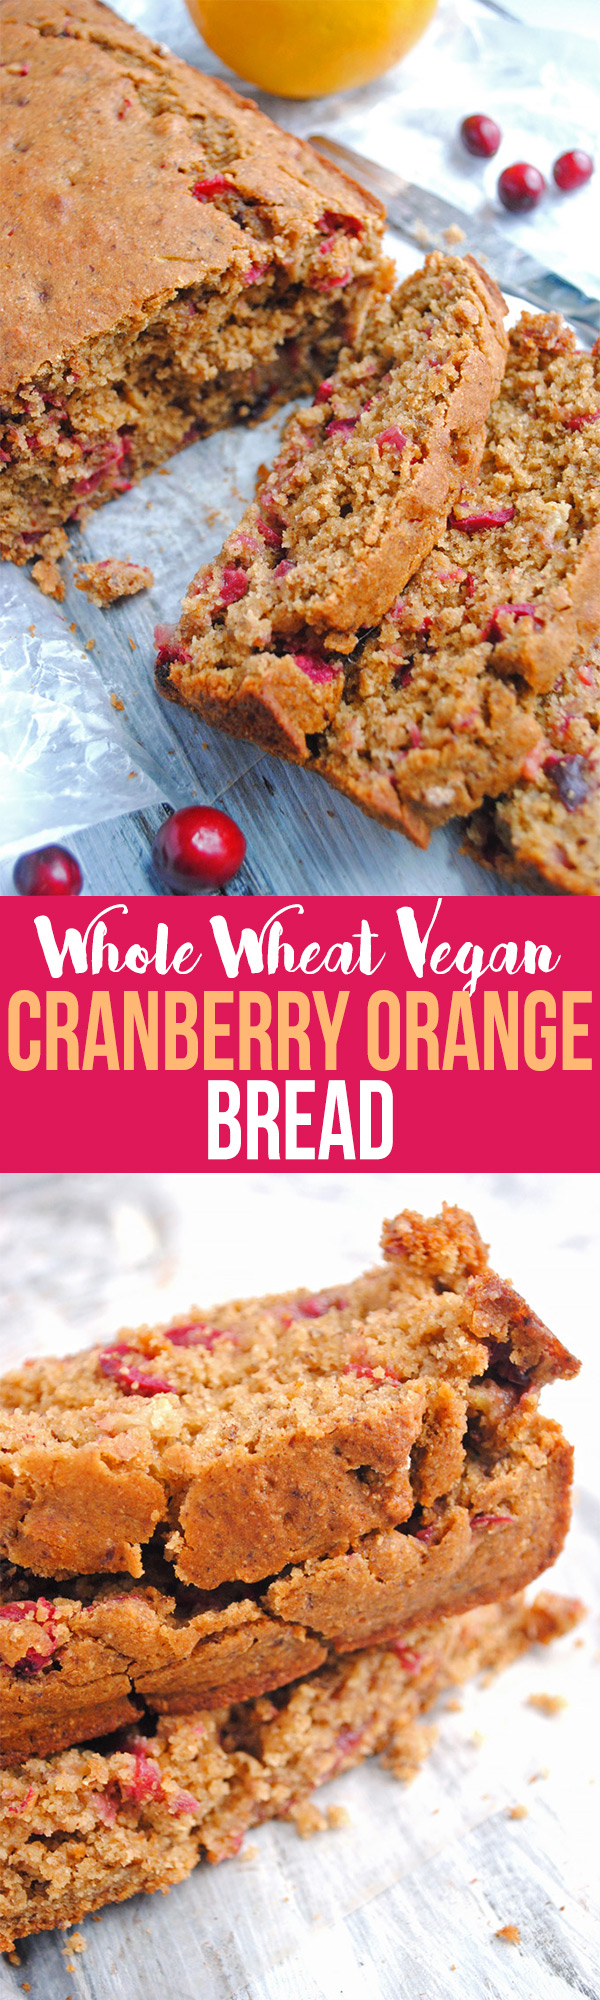 Fresh cranberries and hand-squeezed orange juice come together to make this Whole Wheat Vegan Cranberry Orange Bread that's perfect for the holiday season!